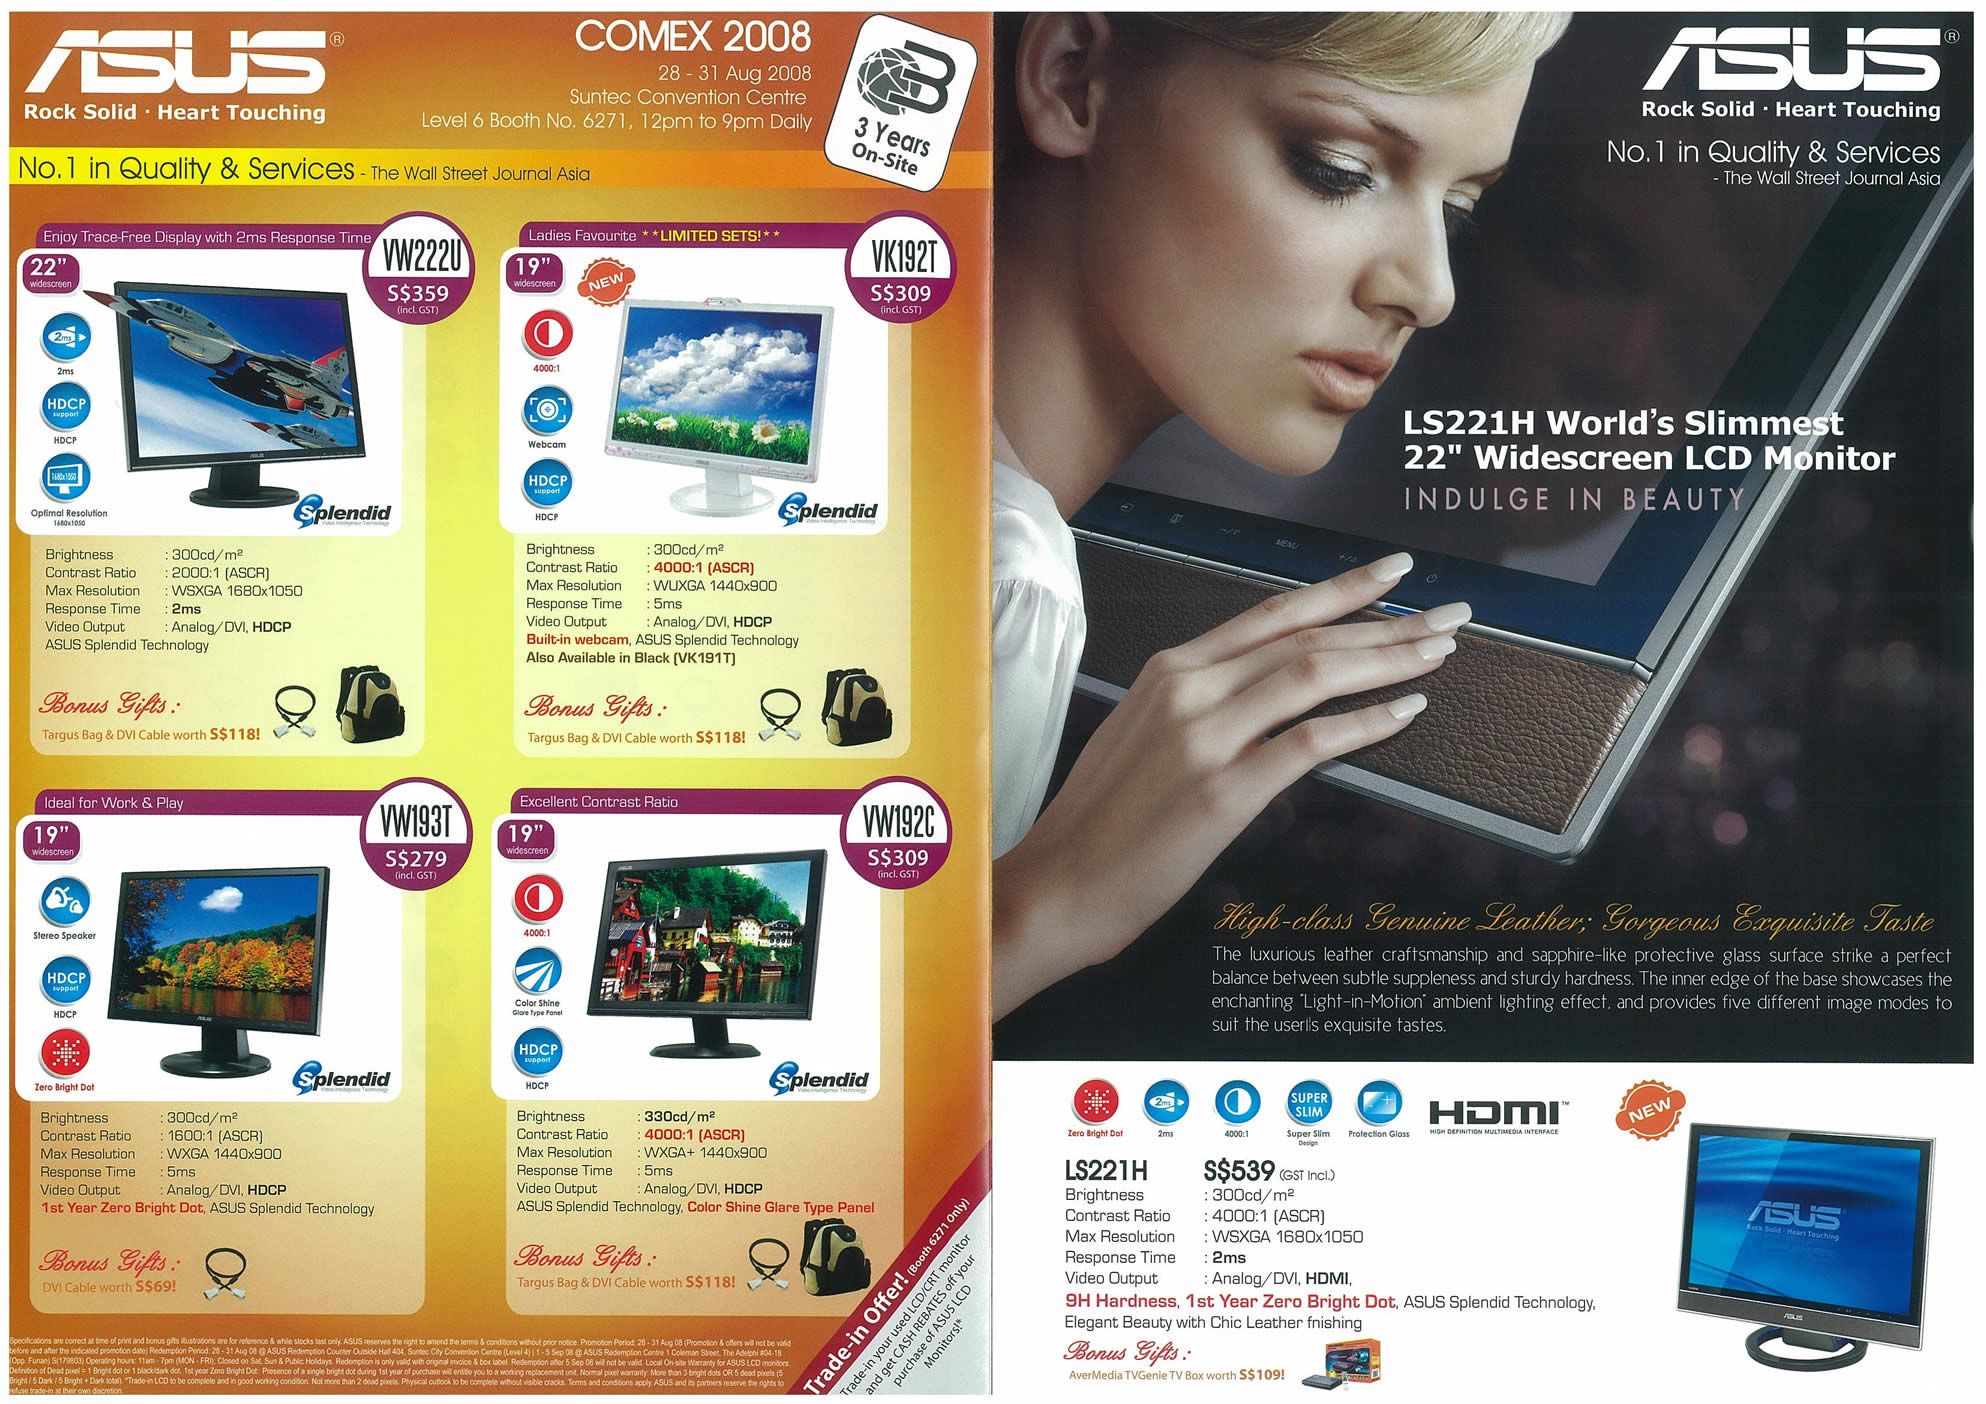 Comex 2008 price list image brochure of ASUS LCD Monitors Page 1